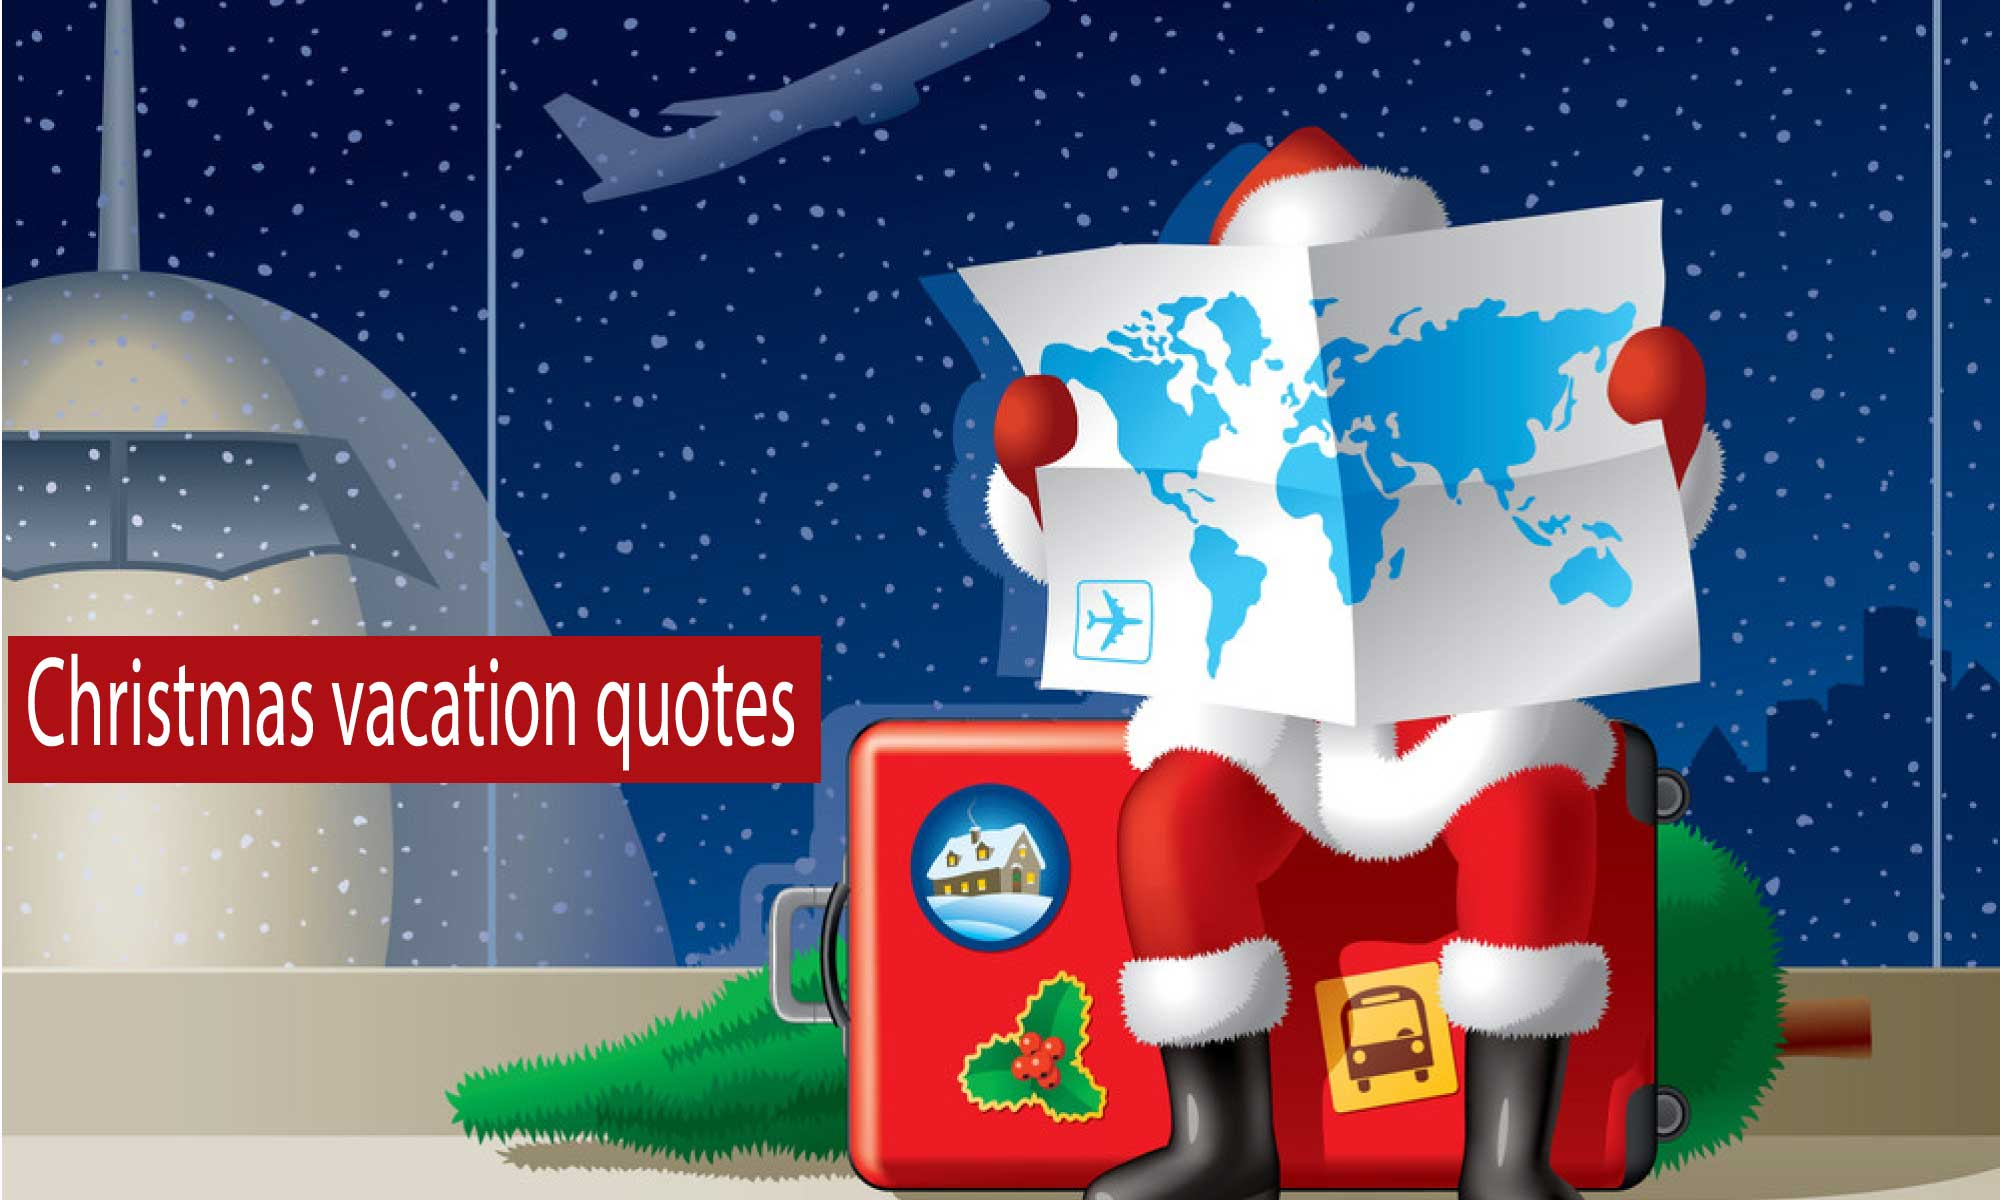 Christmas-vacation-quotes